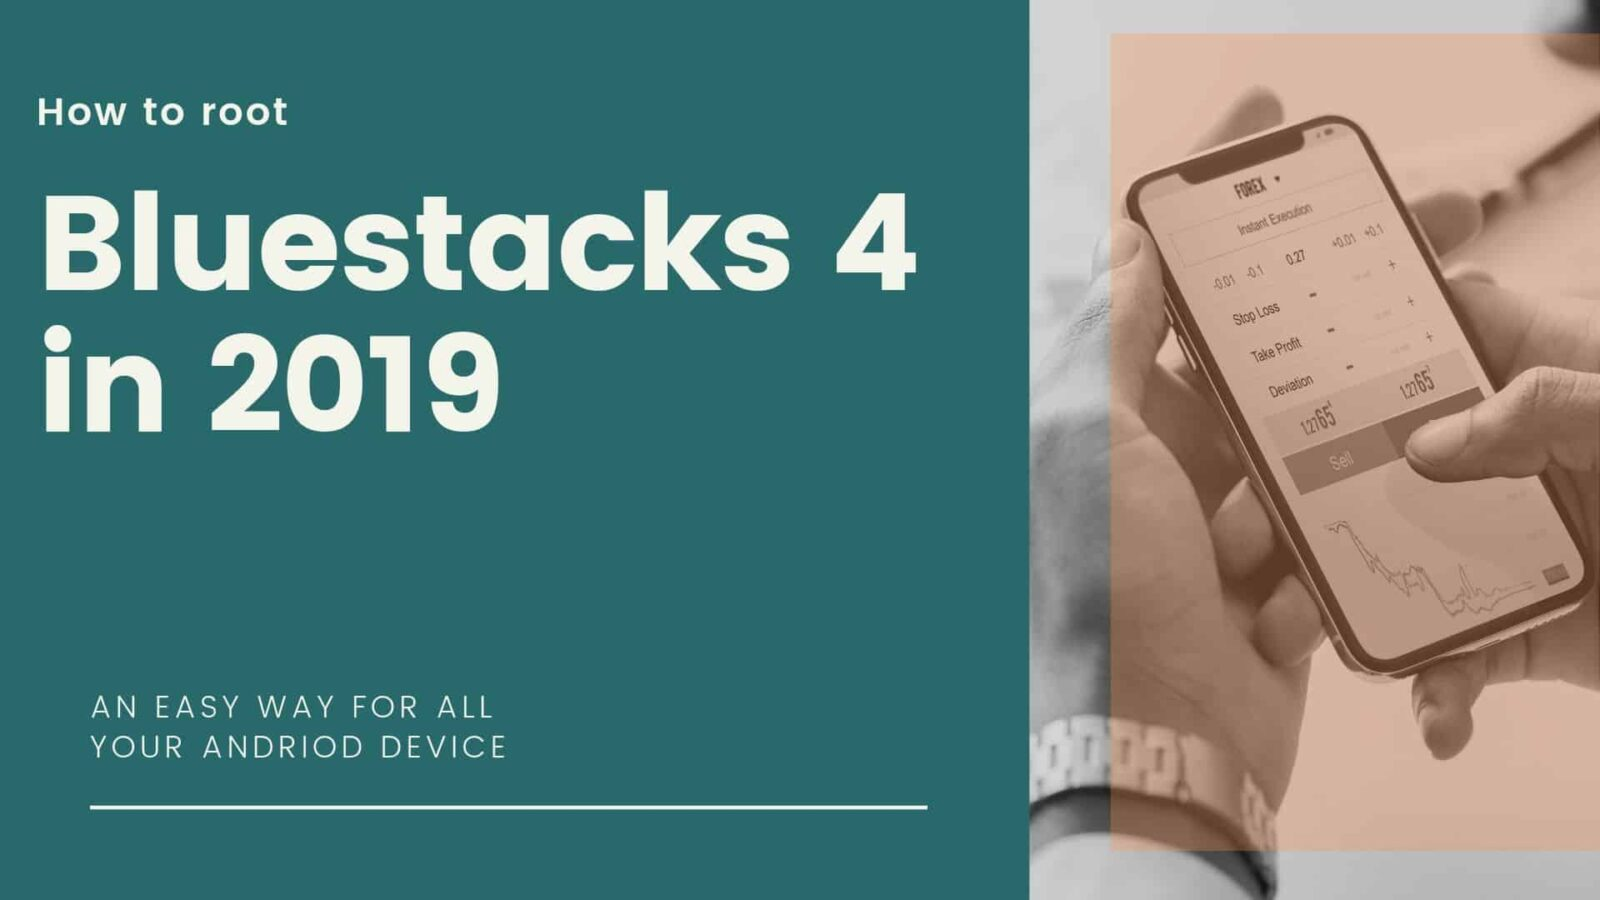 How To Root Bluestacks 4 bstweaker 2020 (Updated)